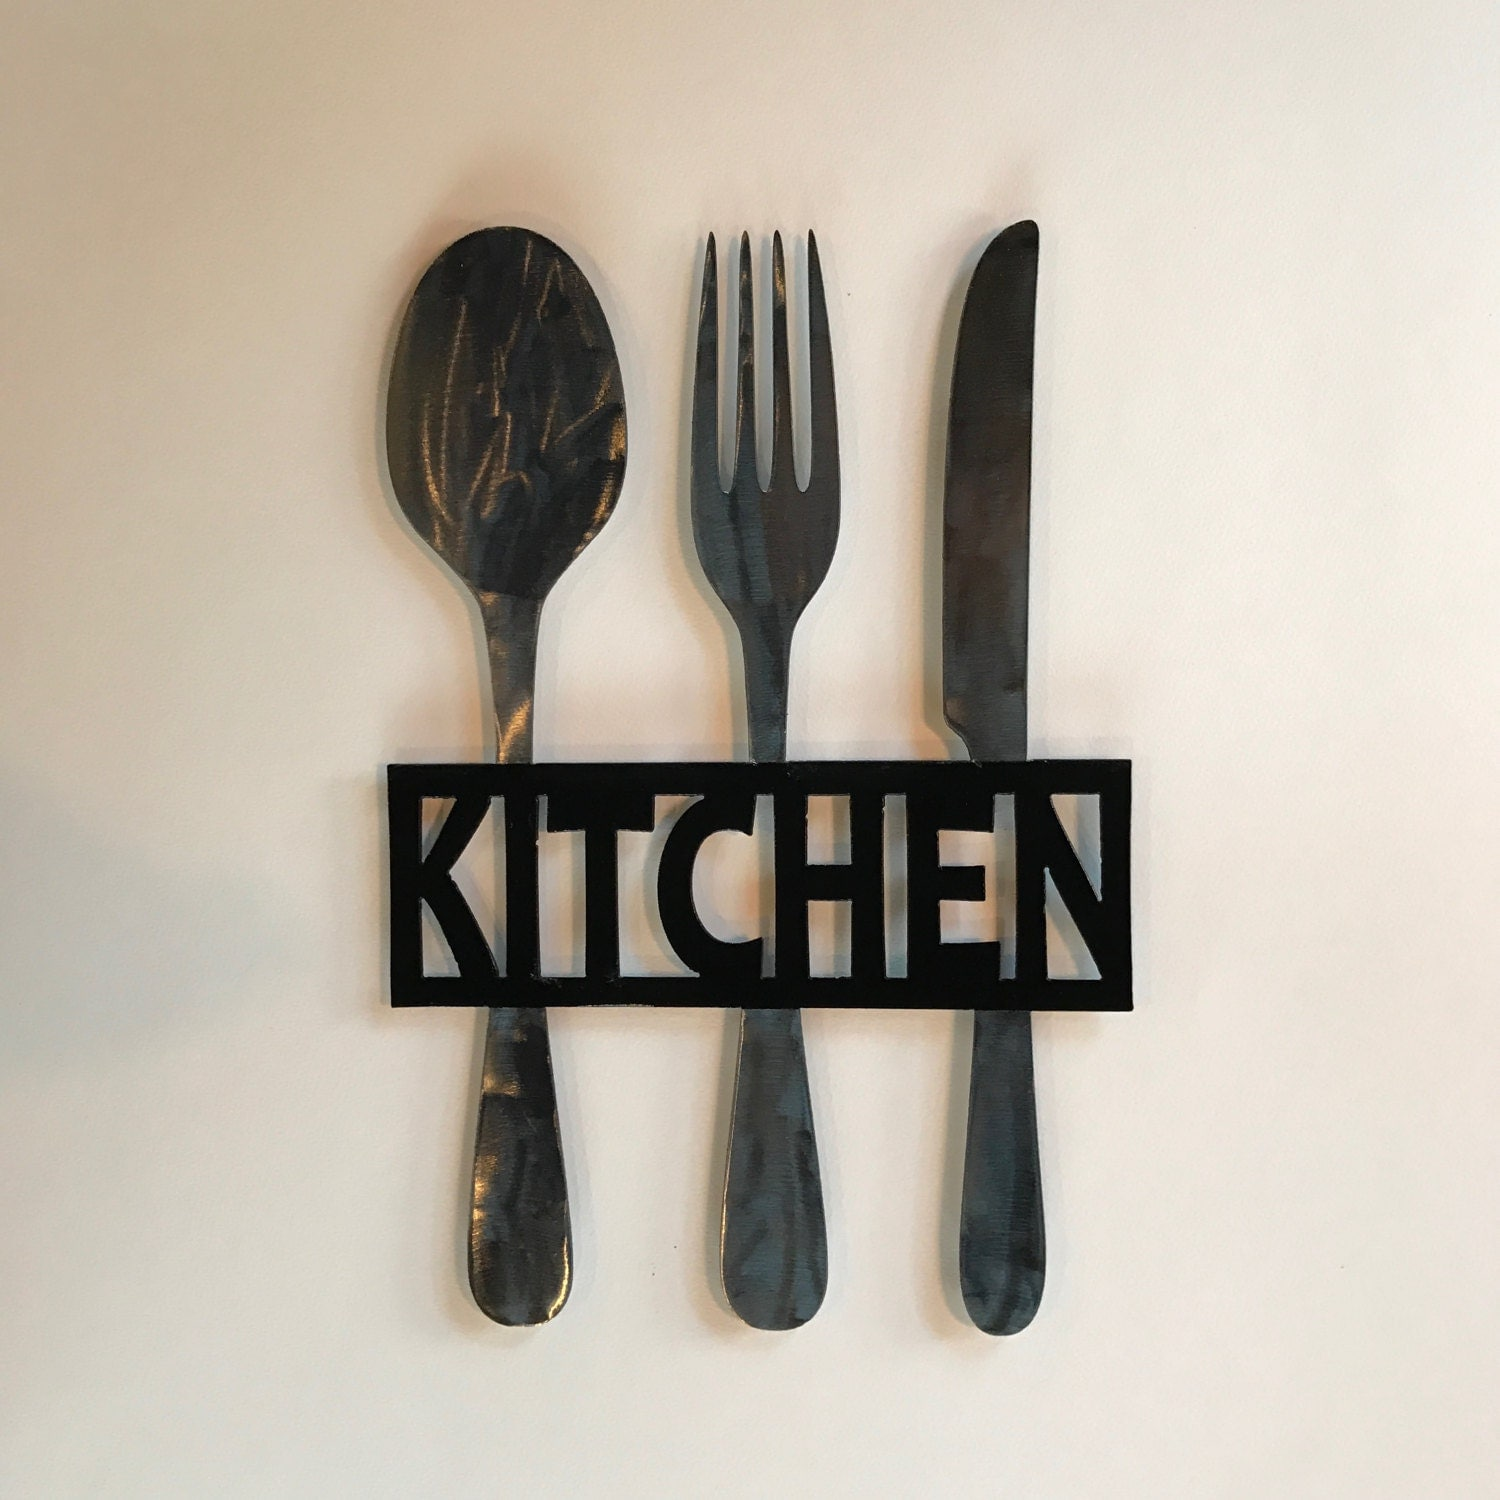 Kitchen Metal Sign, Knife Fork and Spoon Wall Decor, Metal Kitchen Decor,  Fork and Spoon, Metal Kitchen Sign, Metal Fork Decor